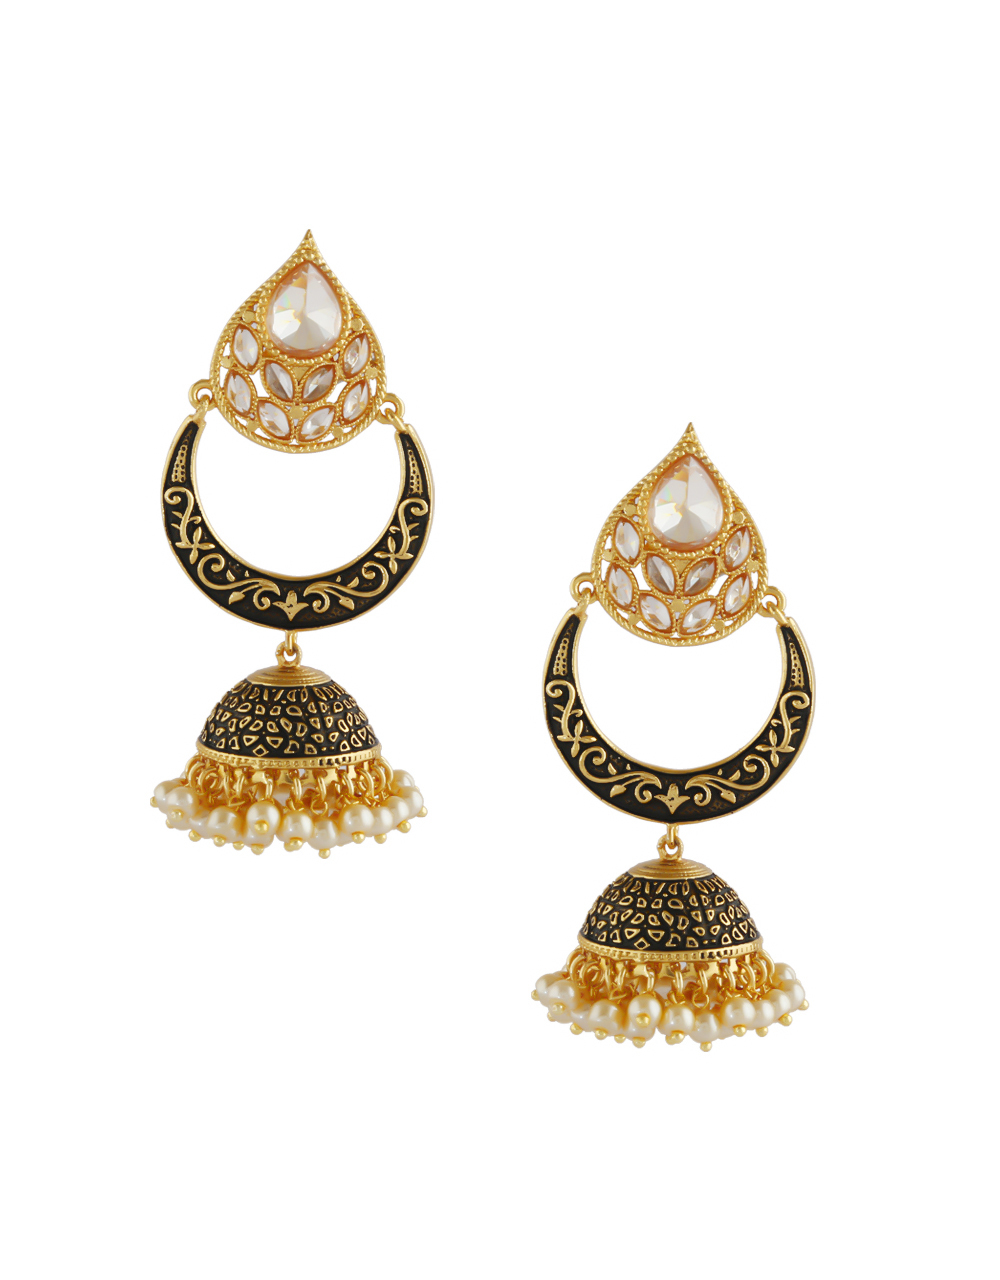 Black Colour Gold Finish Chandbali Jhumkies Earrings